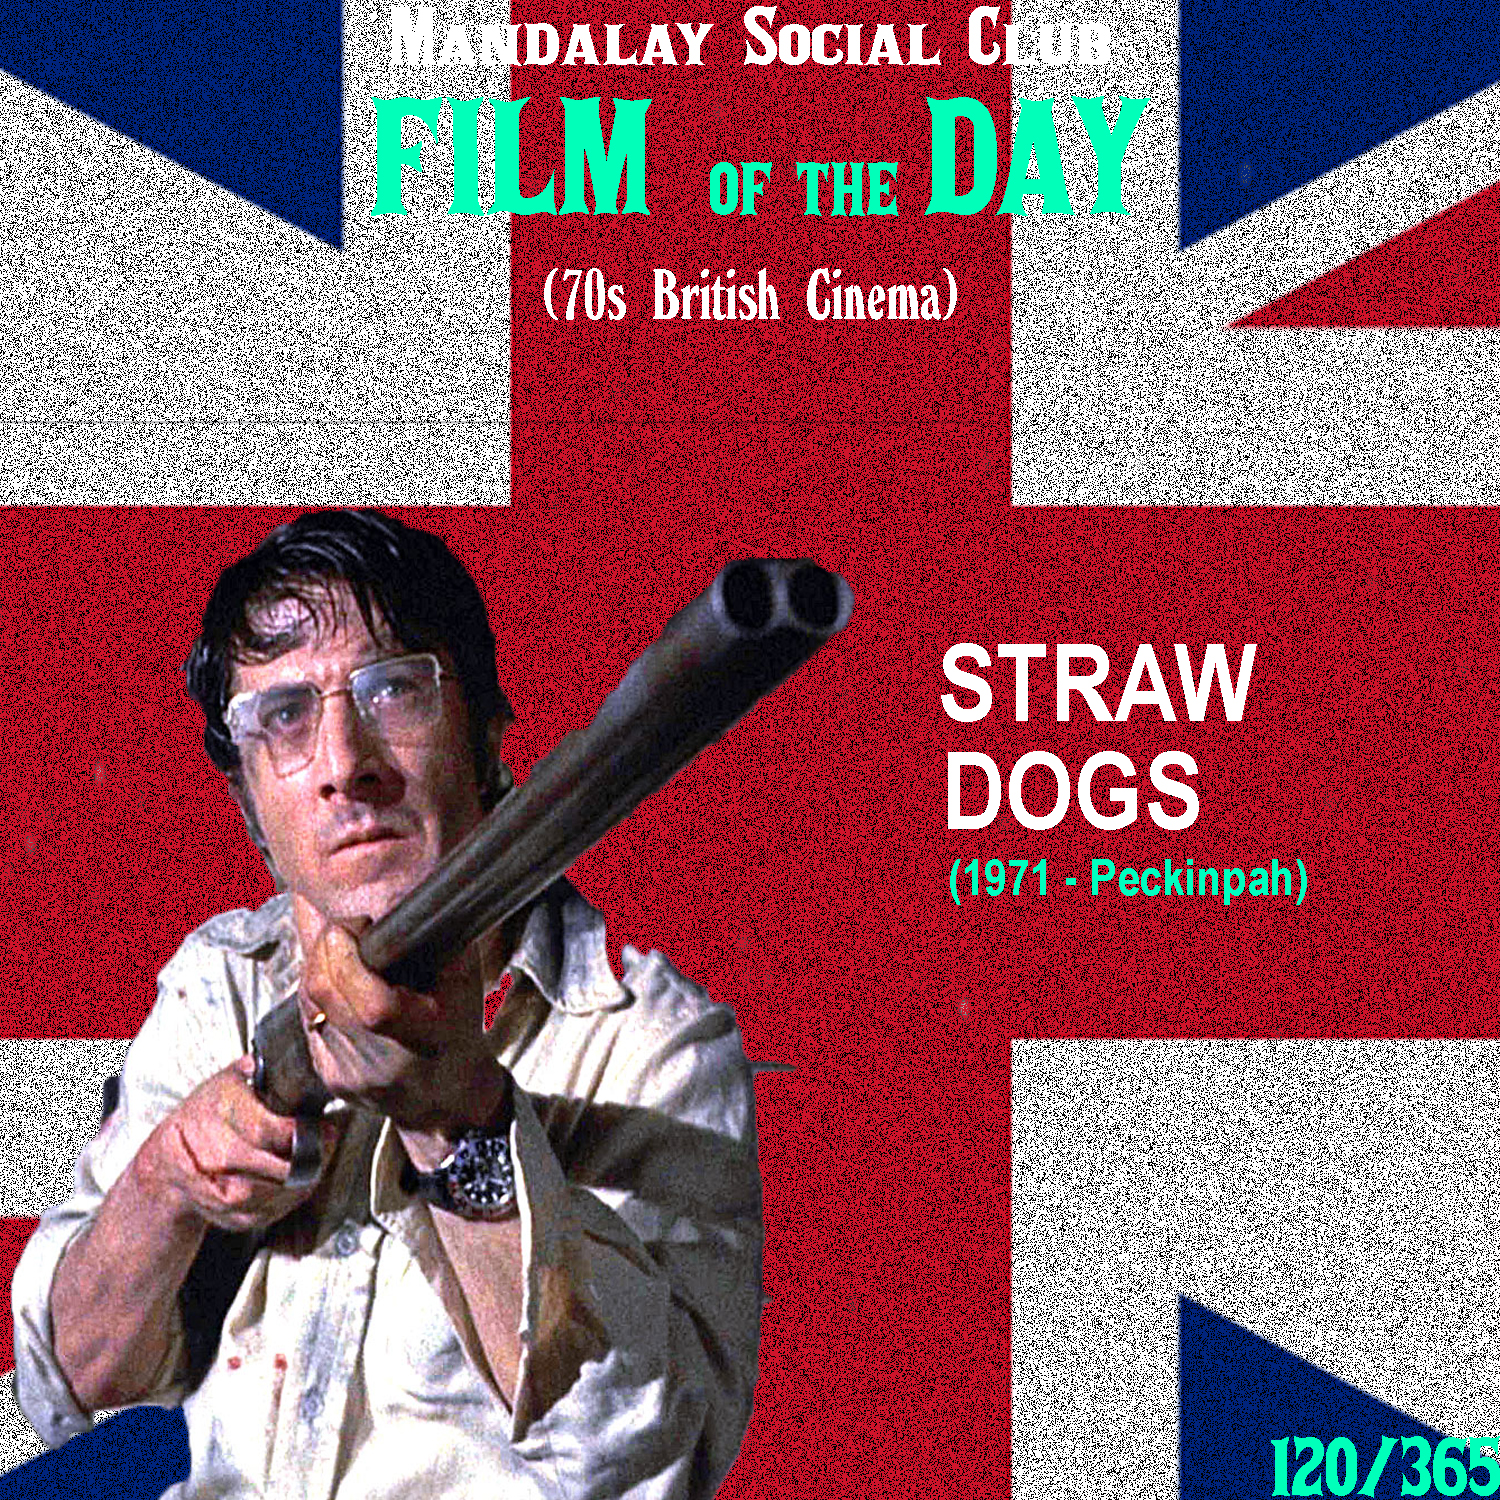 STRAW DOGS     (dir. Sam Peckinpah)   1971 proved to be a pretty memorable year for cinema across the globe. But just in the UK, 3 films released that year left audiences absolutely petrified. One of those was  Straw Dogs .  Technically a US/UK production,  Straw Dogs  is a terrifying look at the degradation of a man's morals when constantly pushed and harassed. Directed by renegade Hollywood filmmaker Sam Peckinpah,  Straw Dogs  stars Dustin Hoffman as David Sumner, a mild-mannered scientist from the states. He's received a grant to conduct research, so his wife and he decide to travel to the small English town she grew up in for some peace and quiet while David works. While in the desolate English town, the locals start to slowly toy with the Sumners as they constantly attempt to assert their dominance over this outsider and his local wife.  Sam Peckinpah has quite the taste for violence and  Straw Dogs  is no exception. Audiences were completely horrified as they were shown such graphic violence, including a pretty lengthy and explicit rape scene.  Straw Dogs , along with a few other British films from 1971, took full advantage of the lax rating system in the UK to create some of the most gritty films in cinema history.    5/5     WATCH: YouTube (FREE)